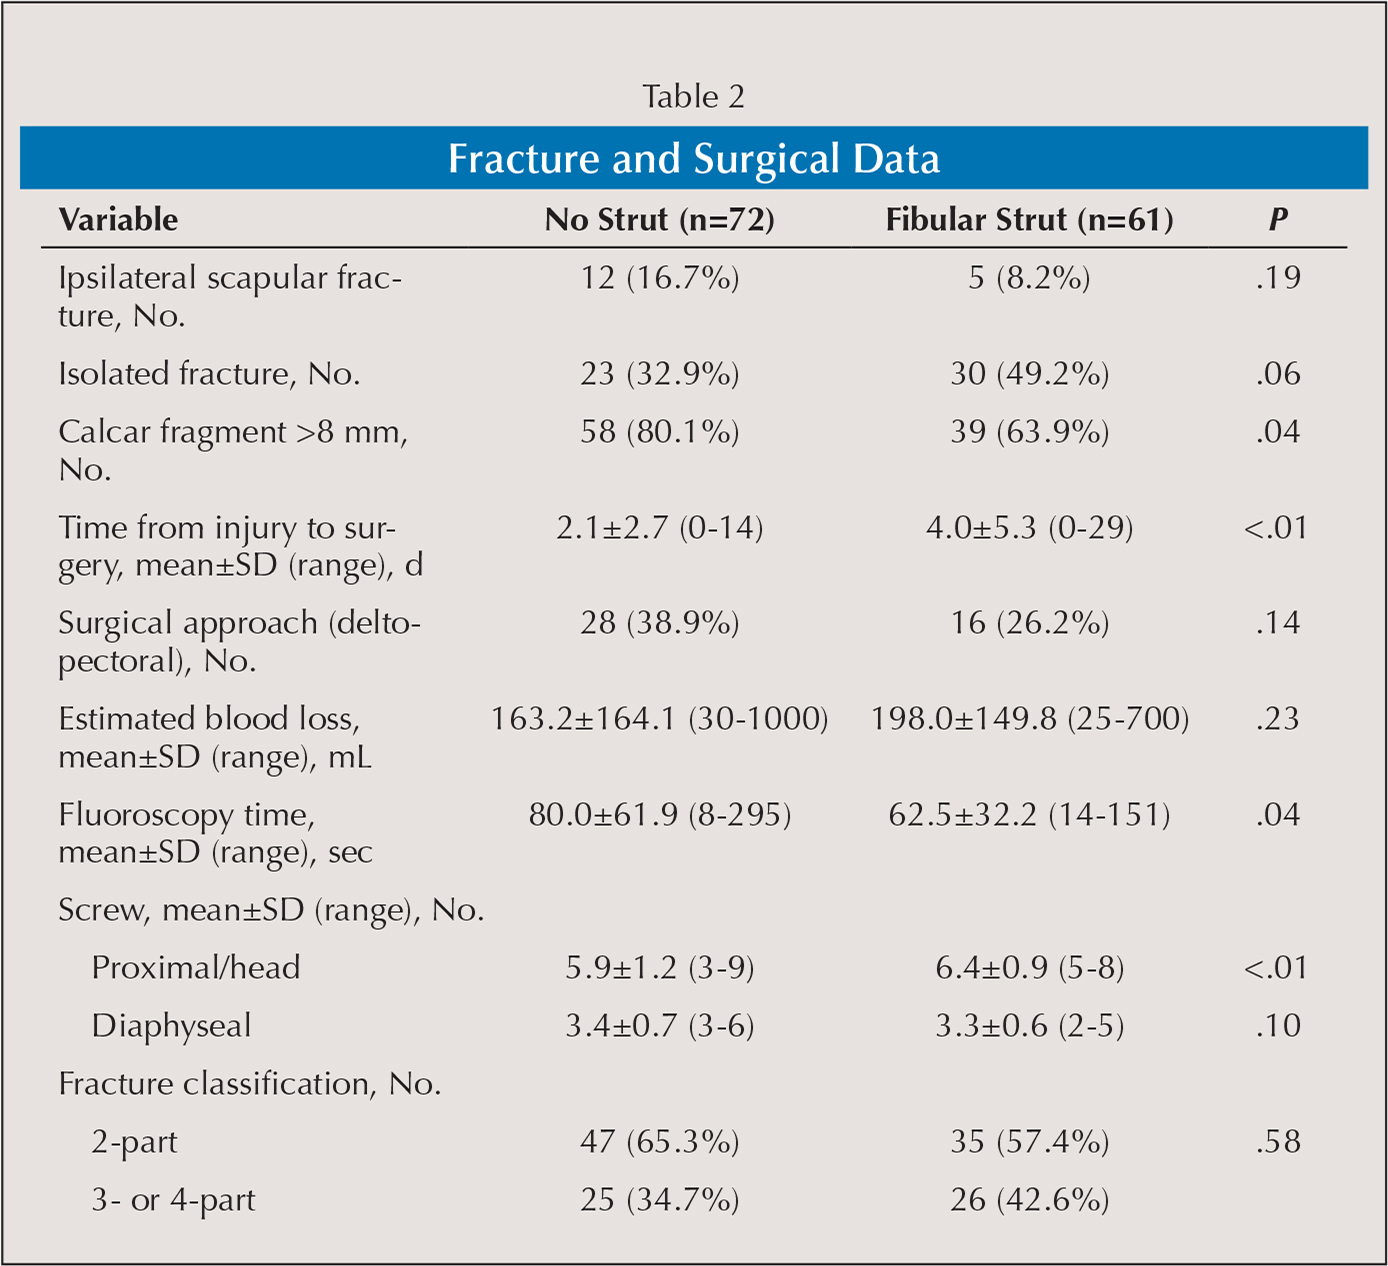 Fracture and Surgical Data